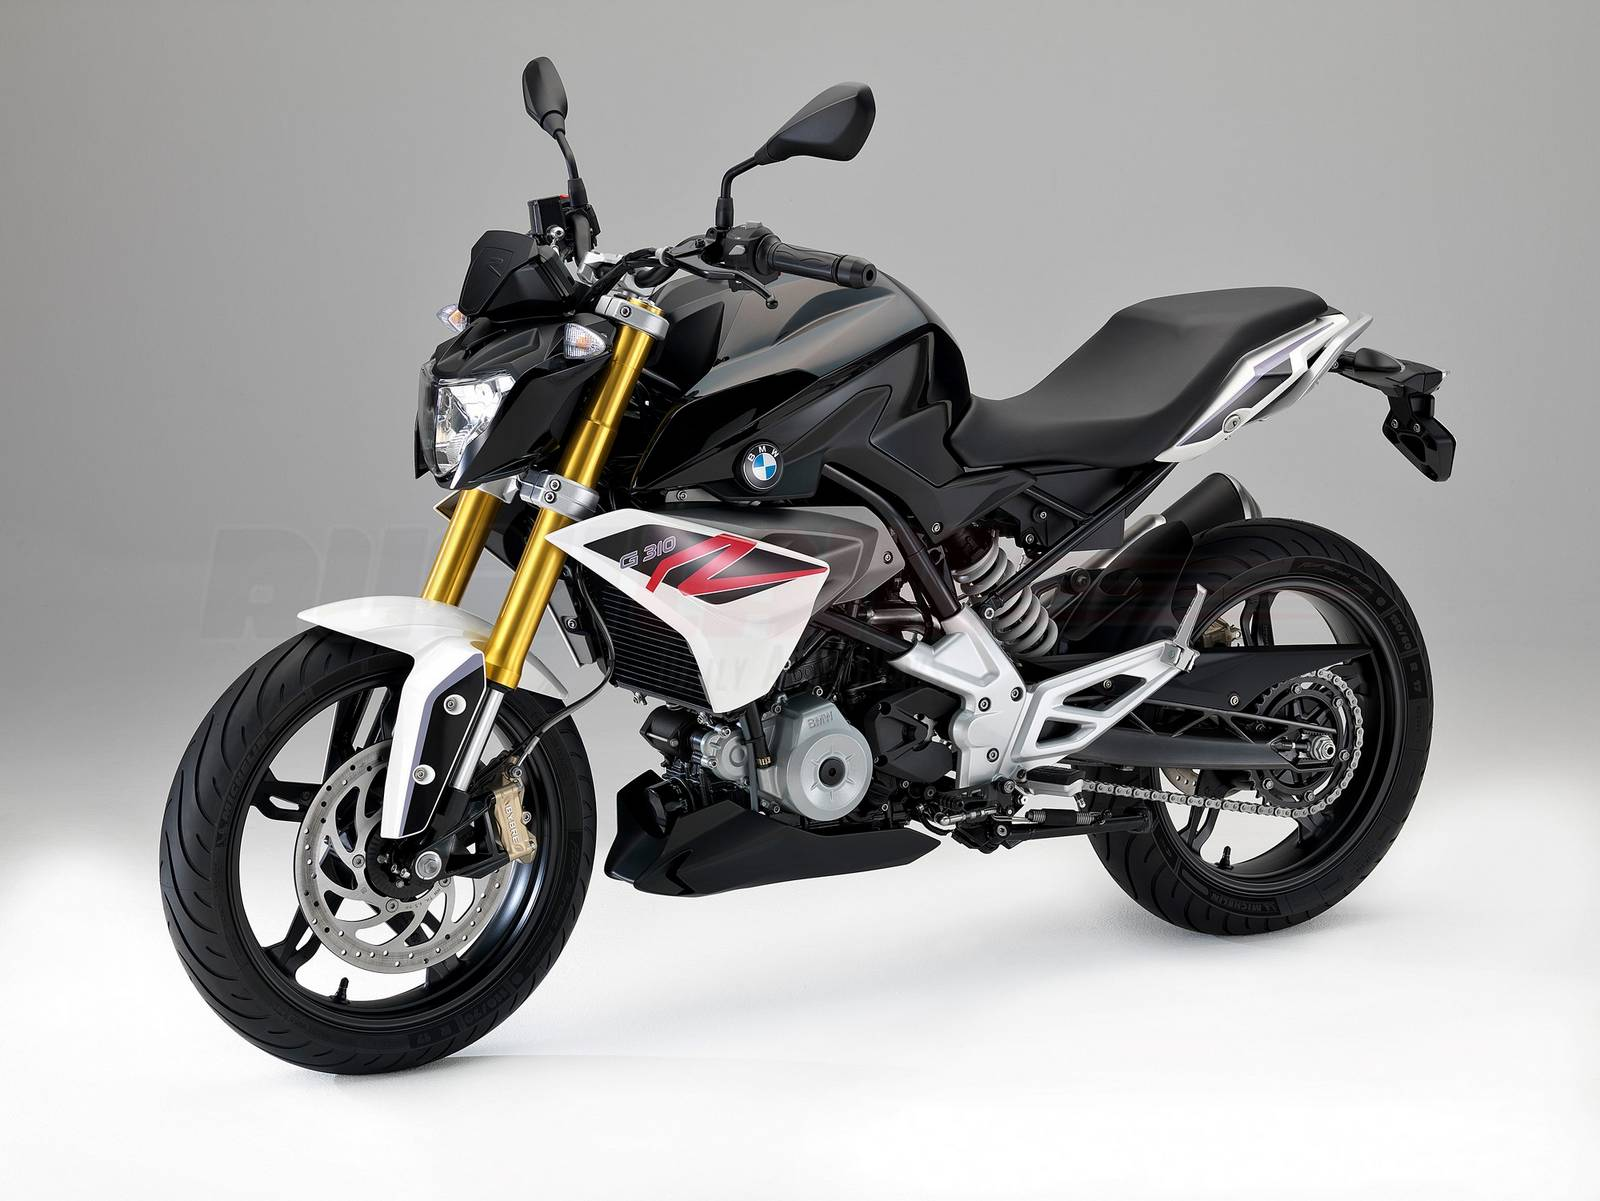 Tvs Bmw Lovechild The G310r Breaks Cover Bajaj Ktm